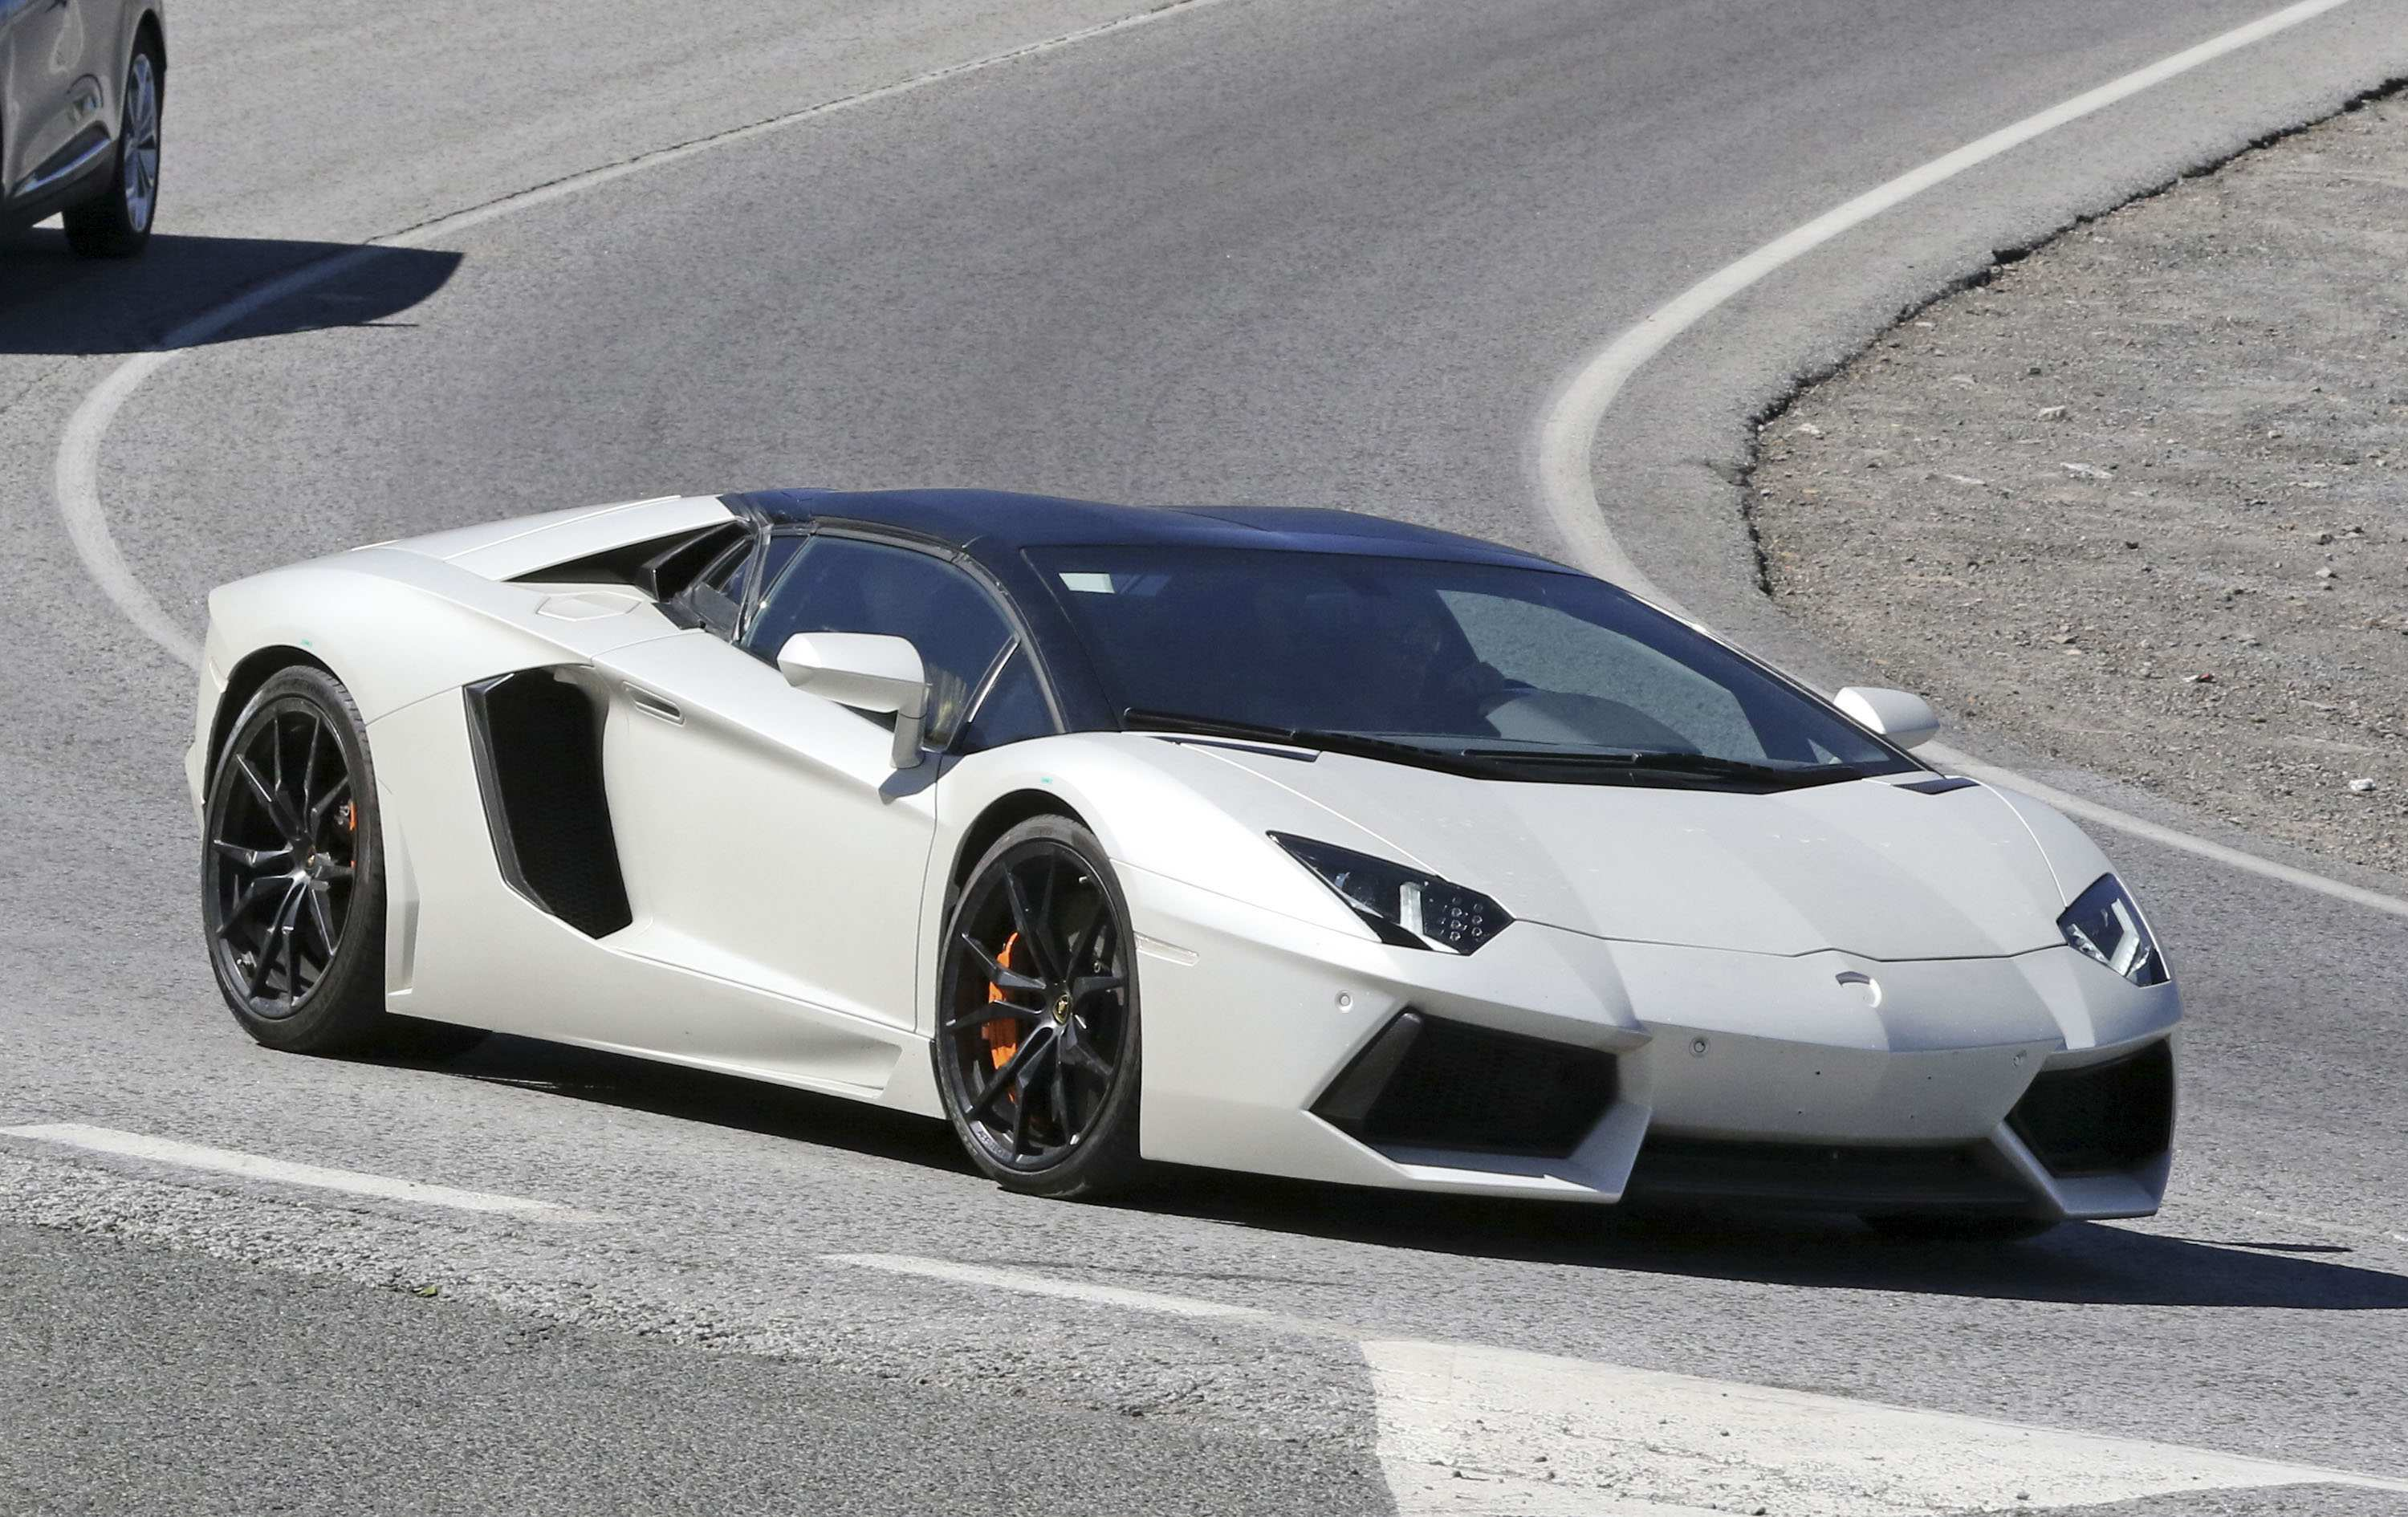 53 The Best 2019 Lamborghini Aventador Images